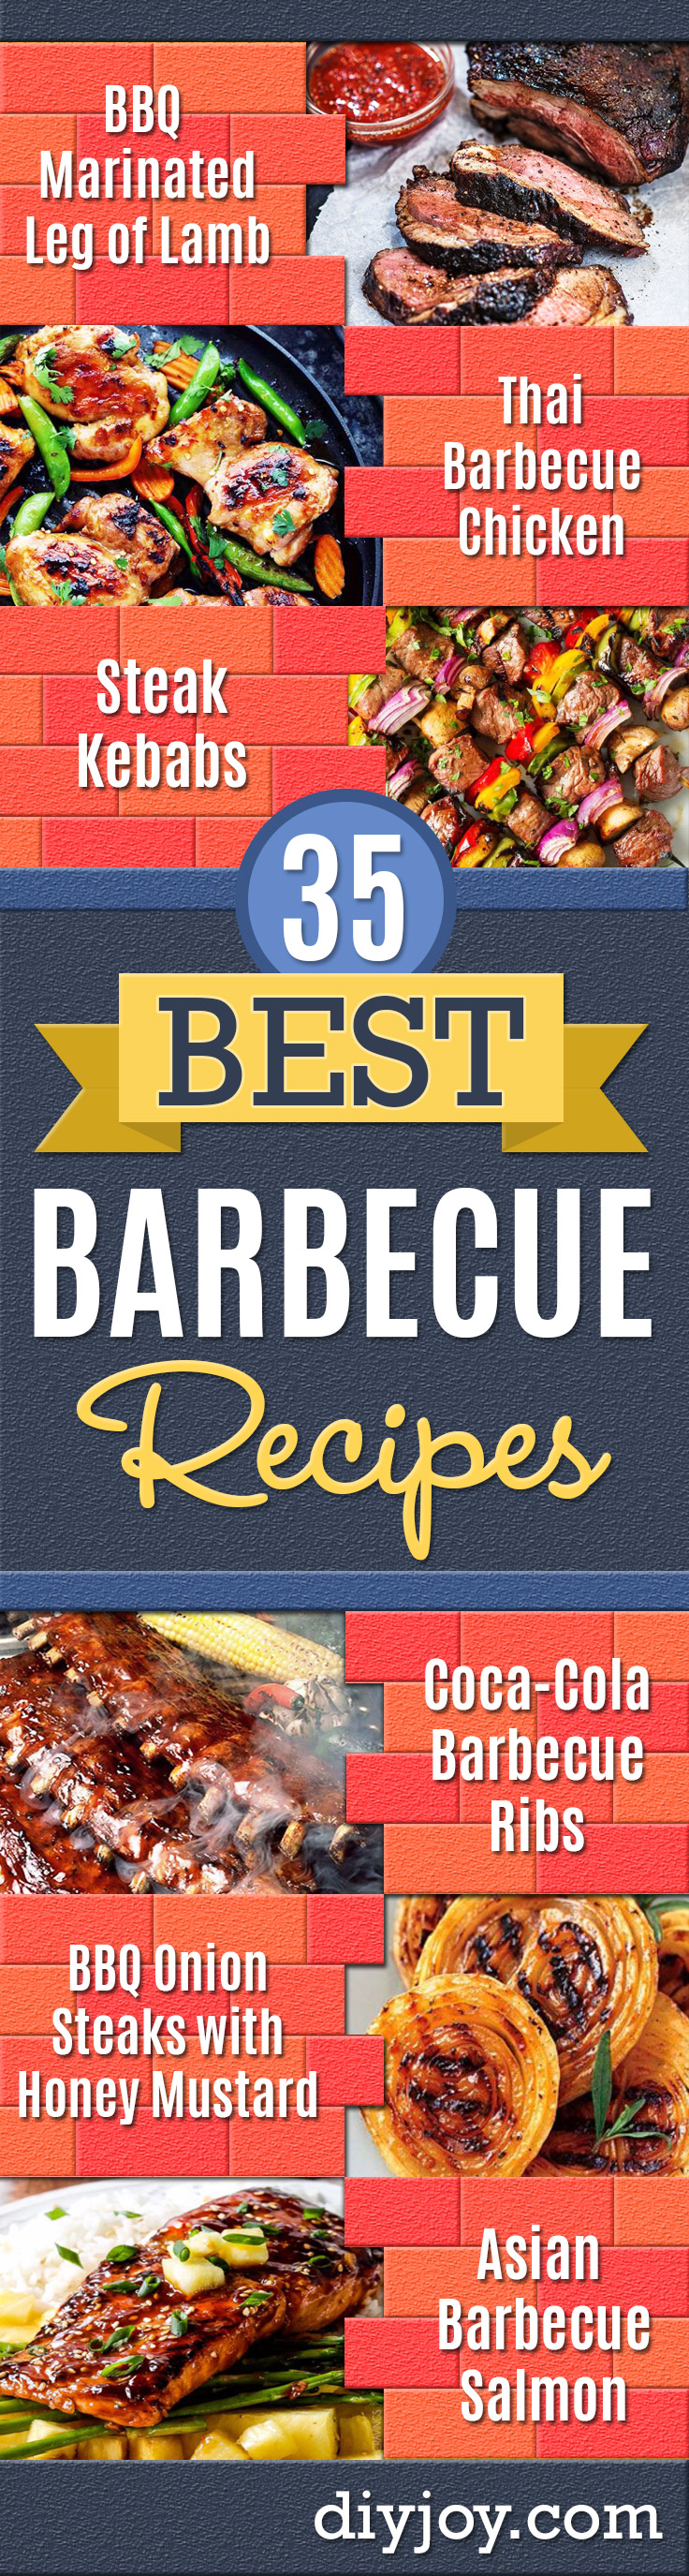 Best Barbecue Recipes - Easy BBQ Recipe Ideas for Lunch, Dinner and Quick Party Appetizers - Grilled and Smoked Foods, Chicken, Beef and Meat, Fish and Vegetable Ideas for Grilling - Sauces and Rubs, Seasonings and Favorite Bar BBQ Tips